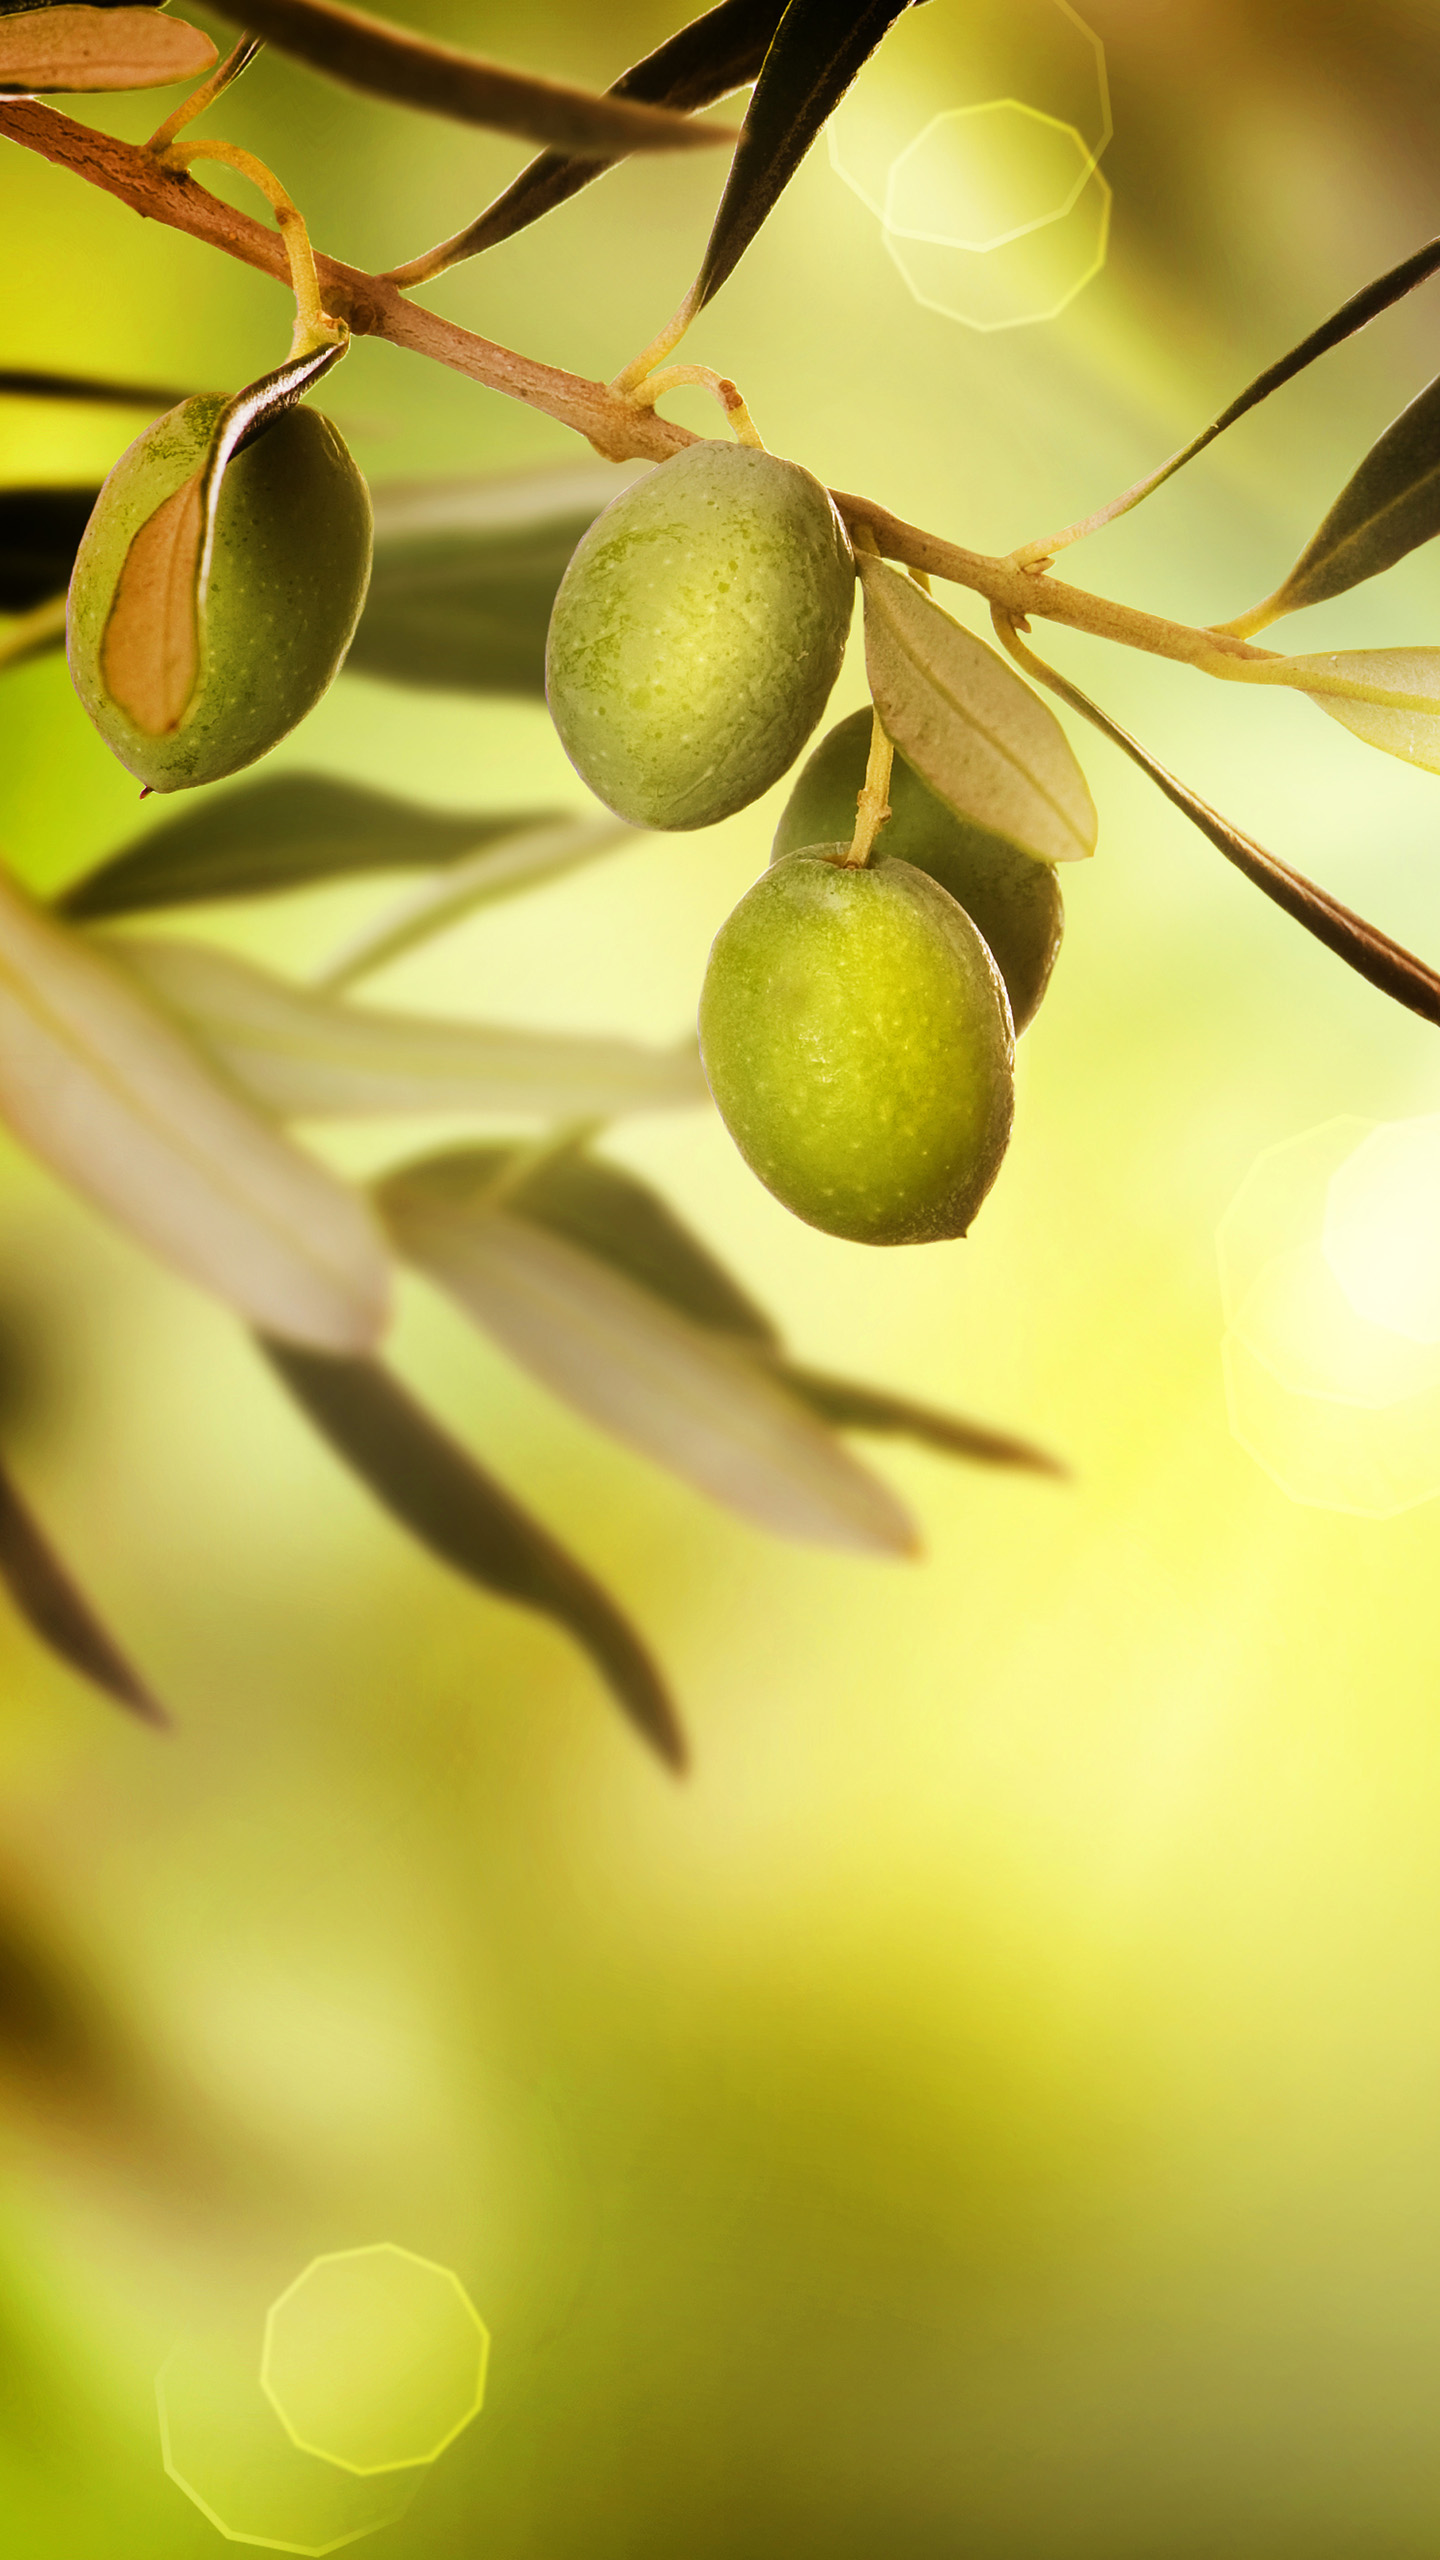 Phone Olive Wallpaper Full HD Pictures 1440x2560